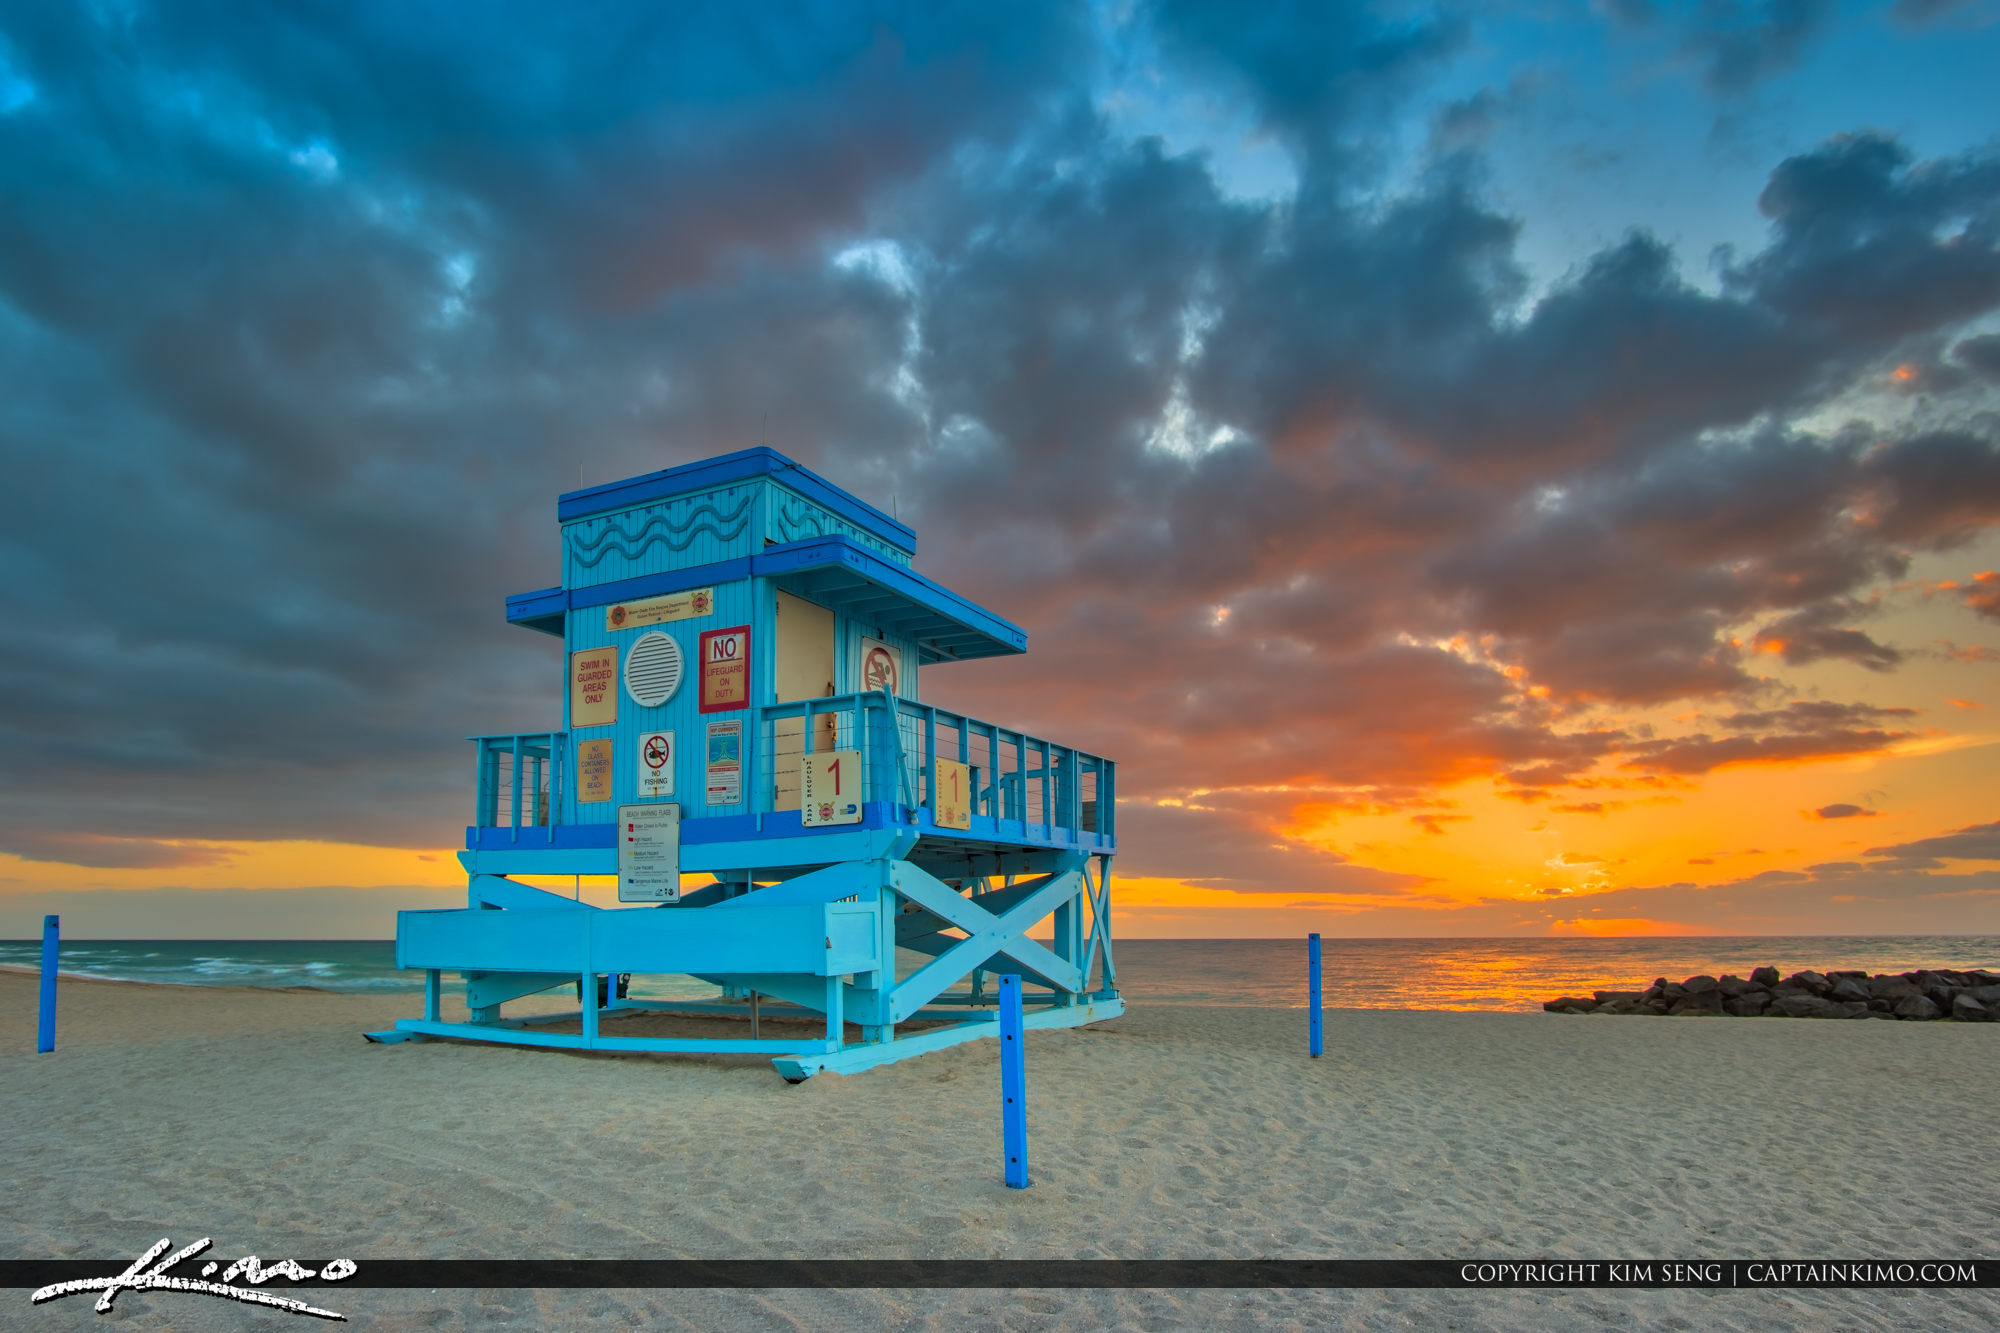 Sunrise Haulover Inlet at Beach Lifeguard Tower